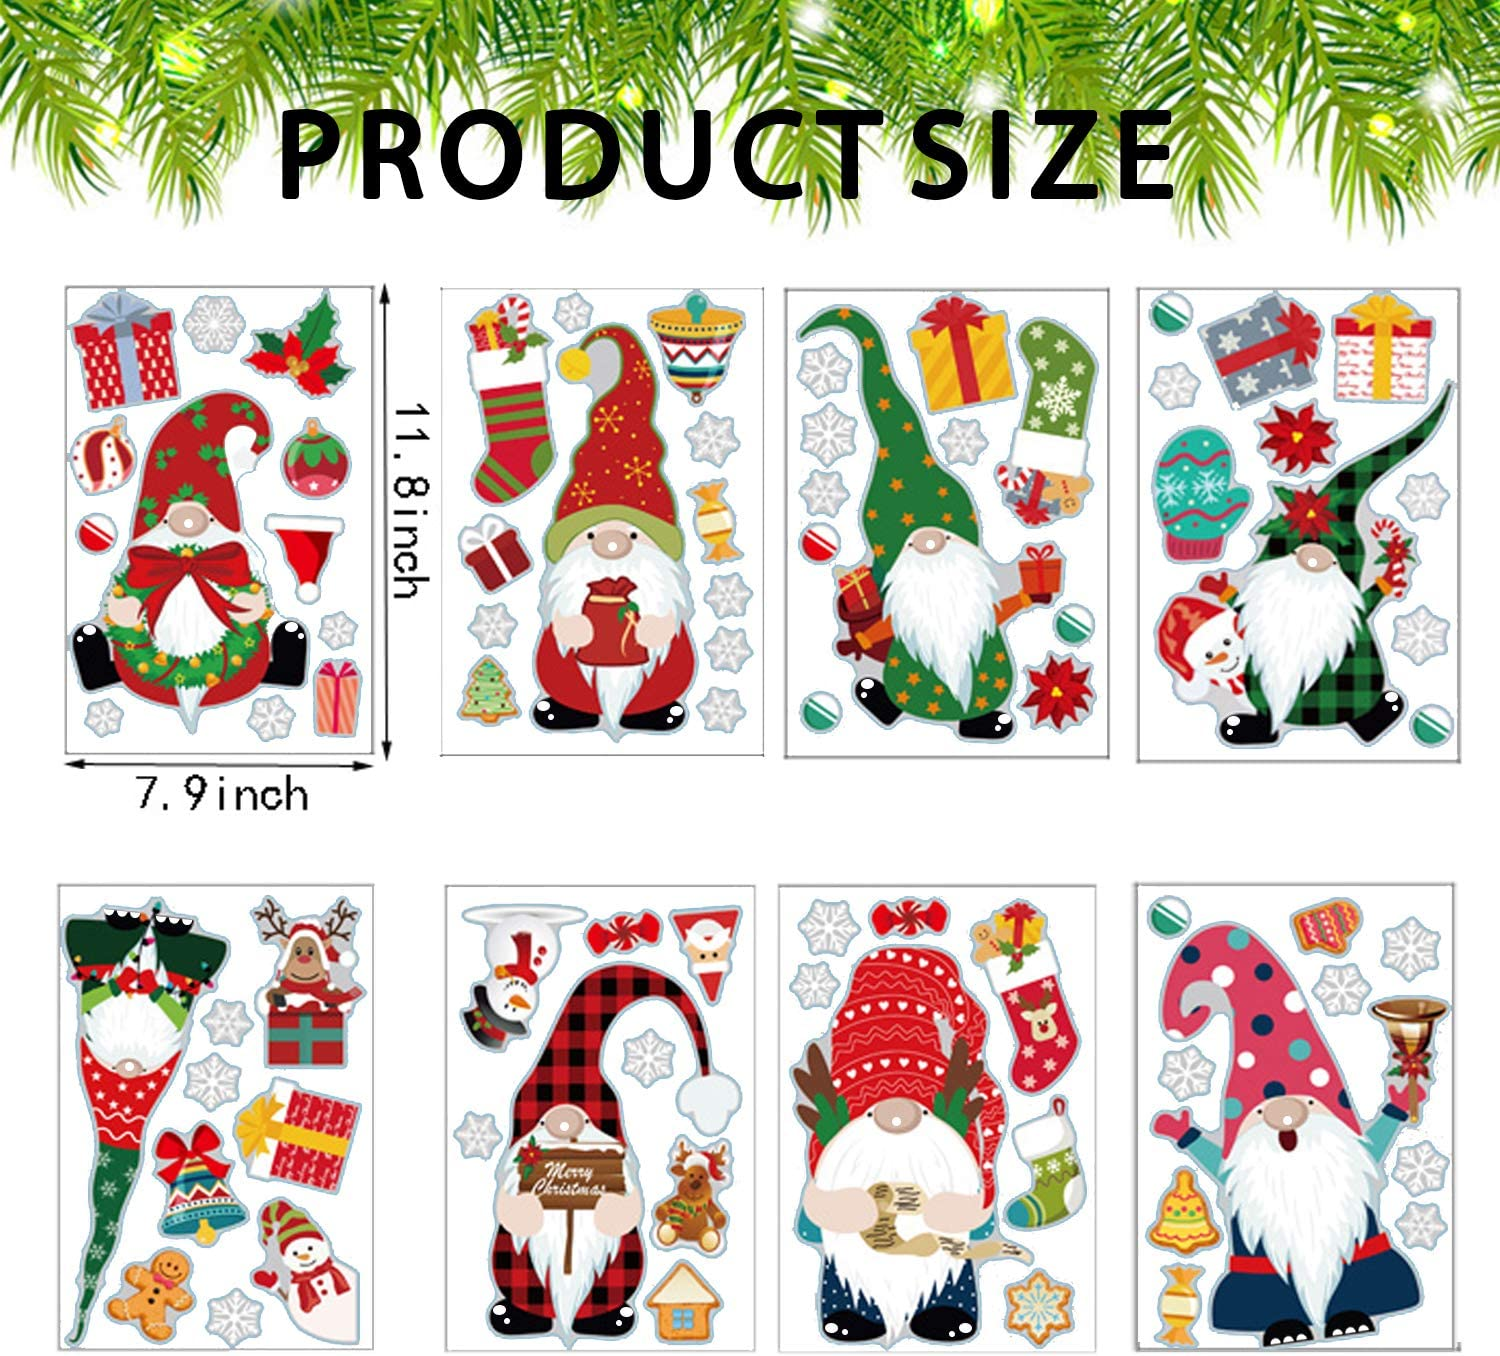 kockuu 79pcs Large Christmas Gnomes Tomte Window Clings Snowflake Static Window Decal Stickers for Winter Christmas Winidow Decoration 8 Sheets